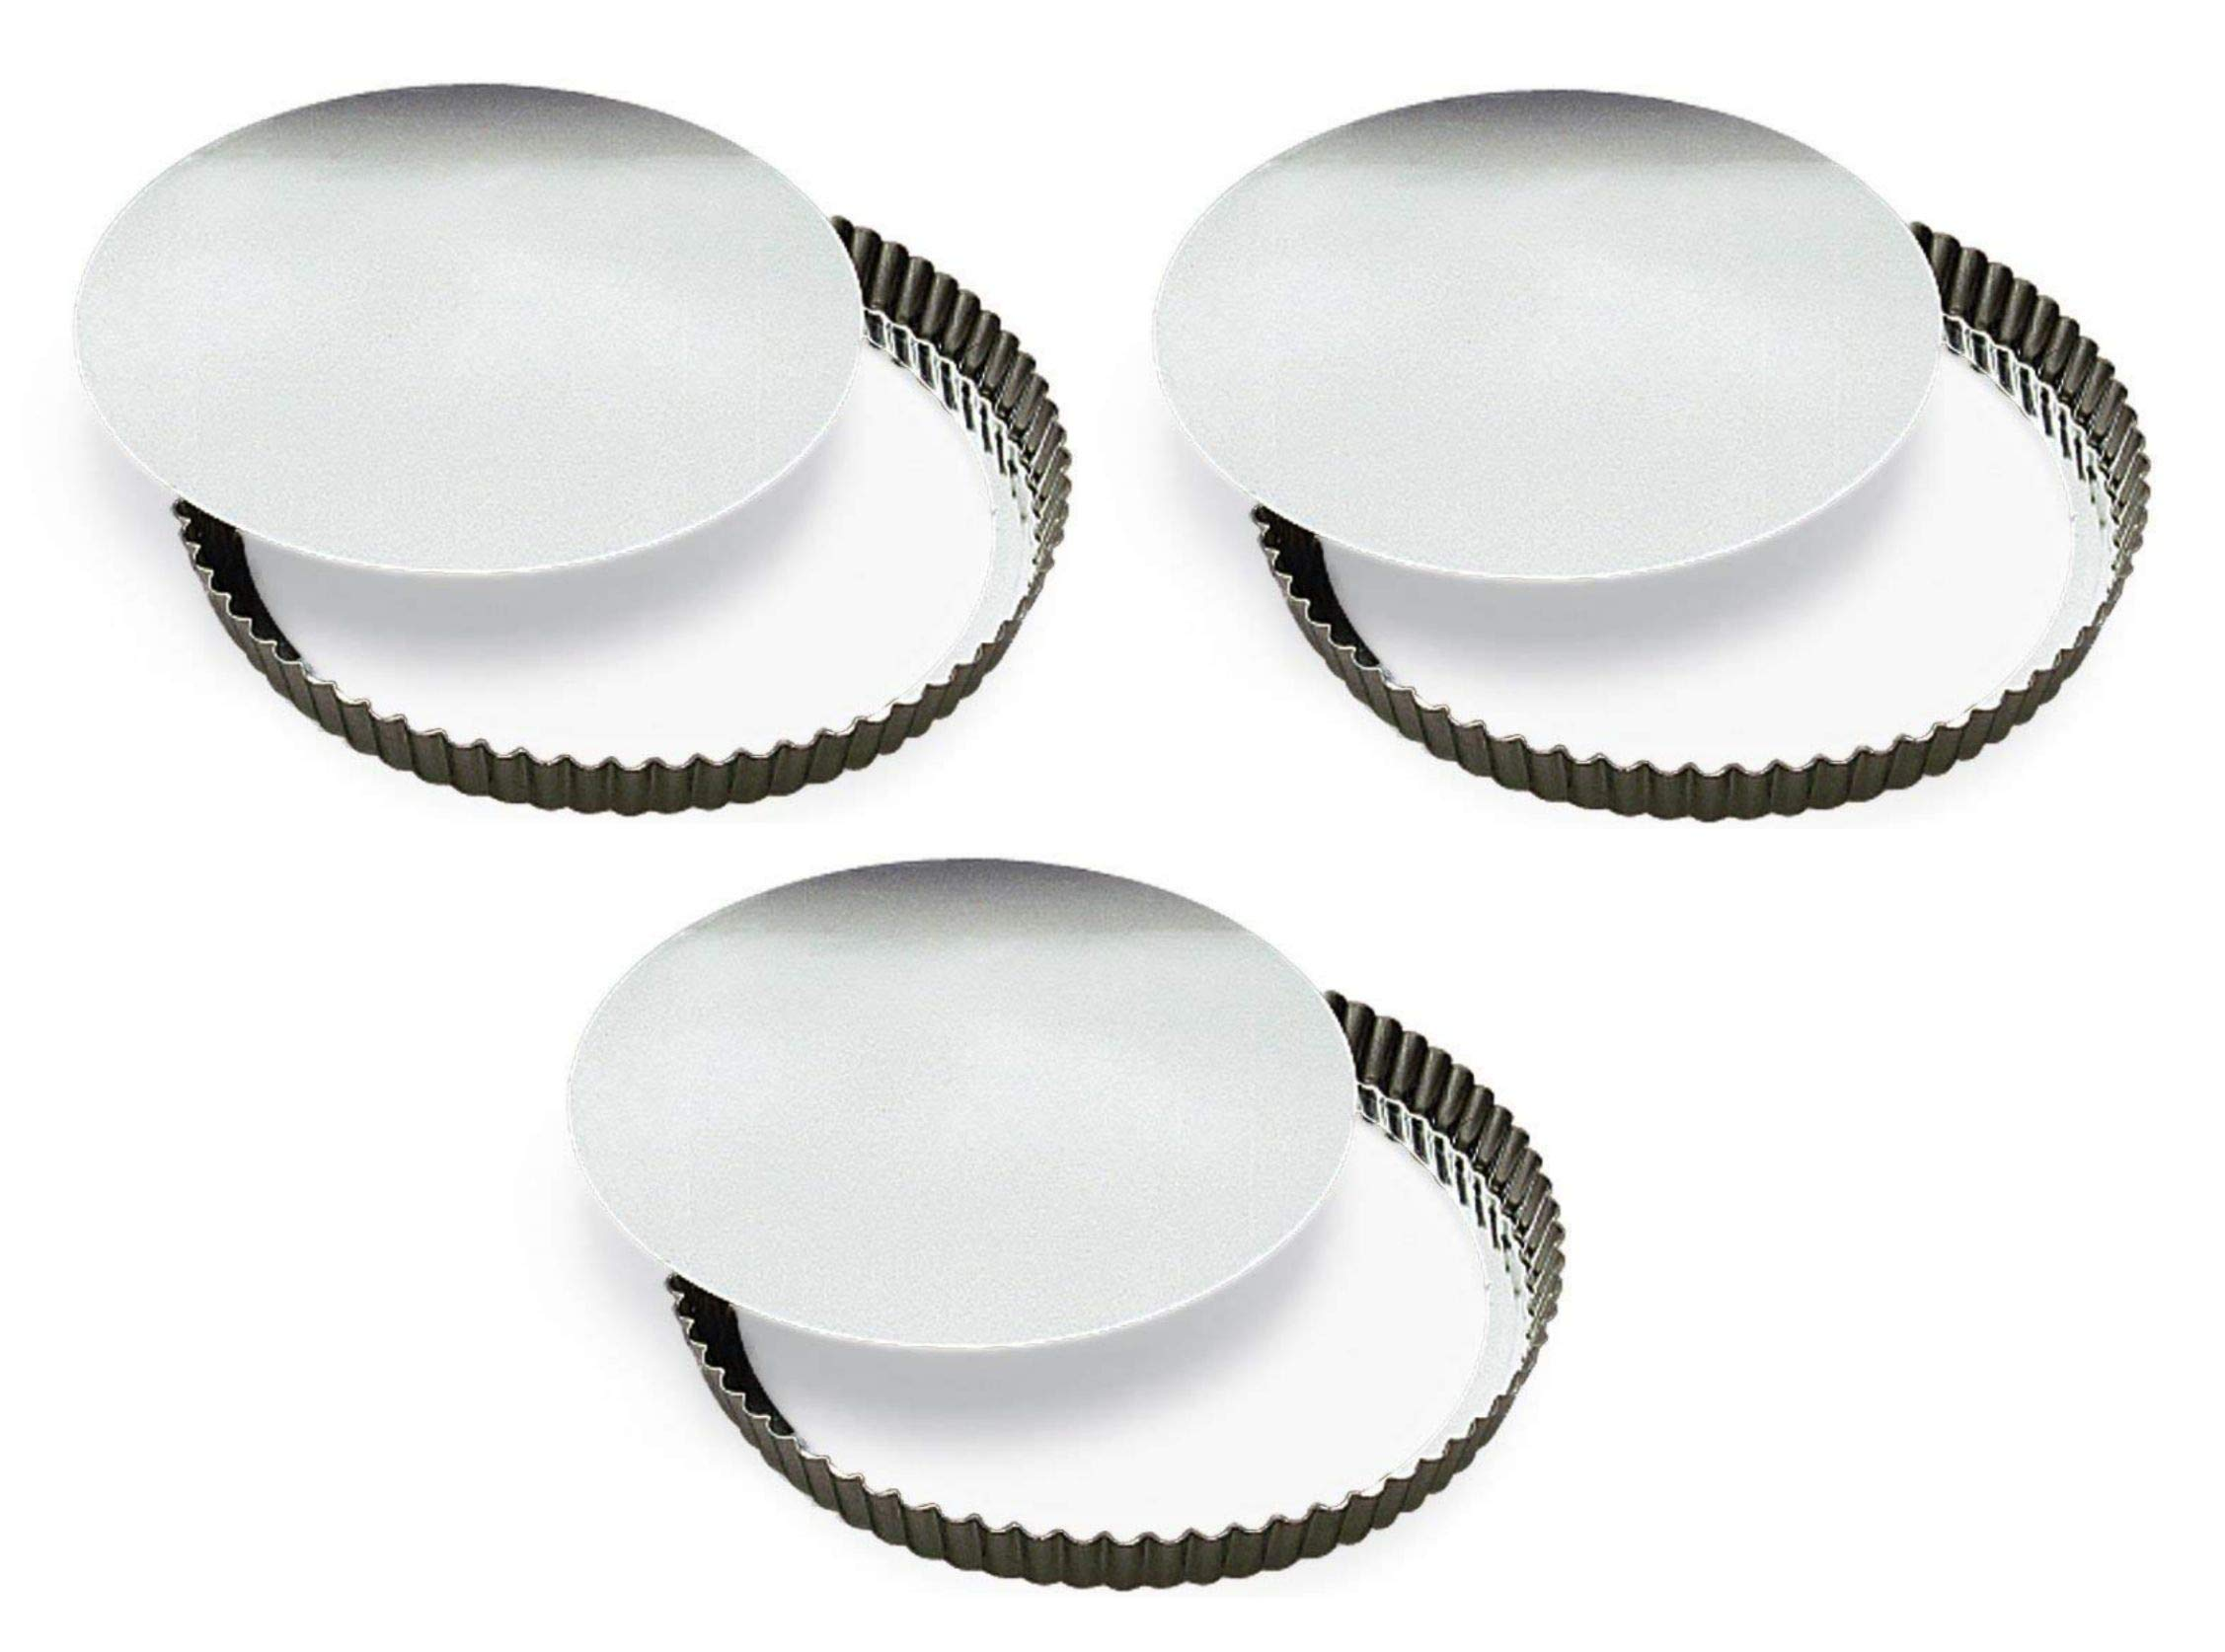 GOBEL 126640 11'' (28cm) / 1.40'' High - TIN Rem.Fluted Quiche Pan- SET OF 3 - [ GREAT VALUE! ]